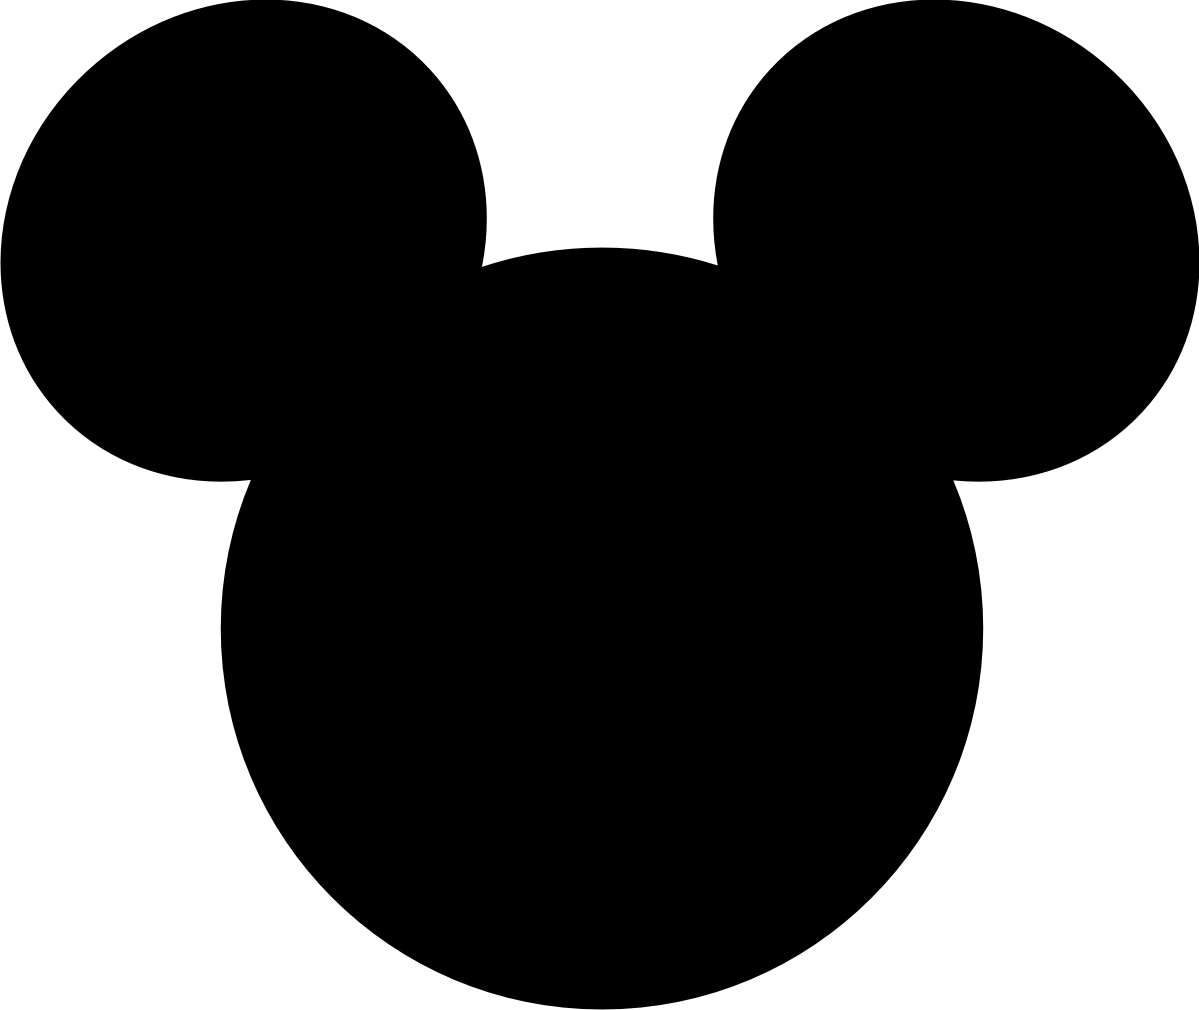 mickey mouse head shape template - winks daisies november 2010